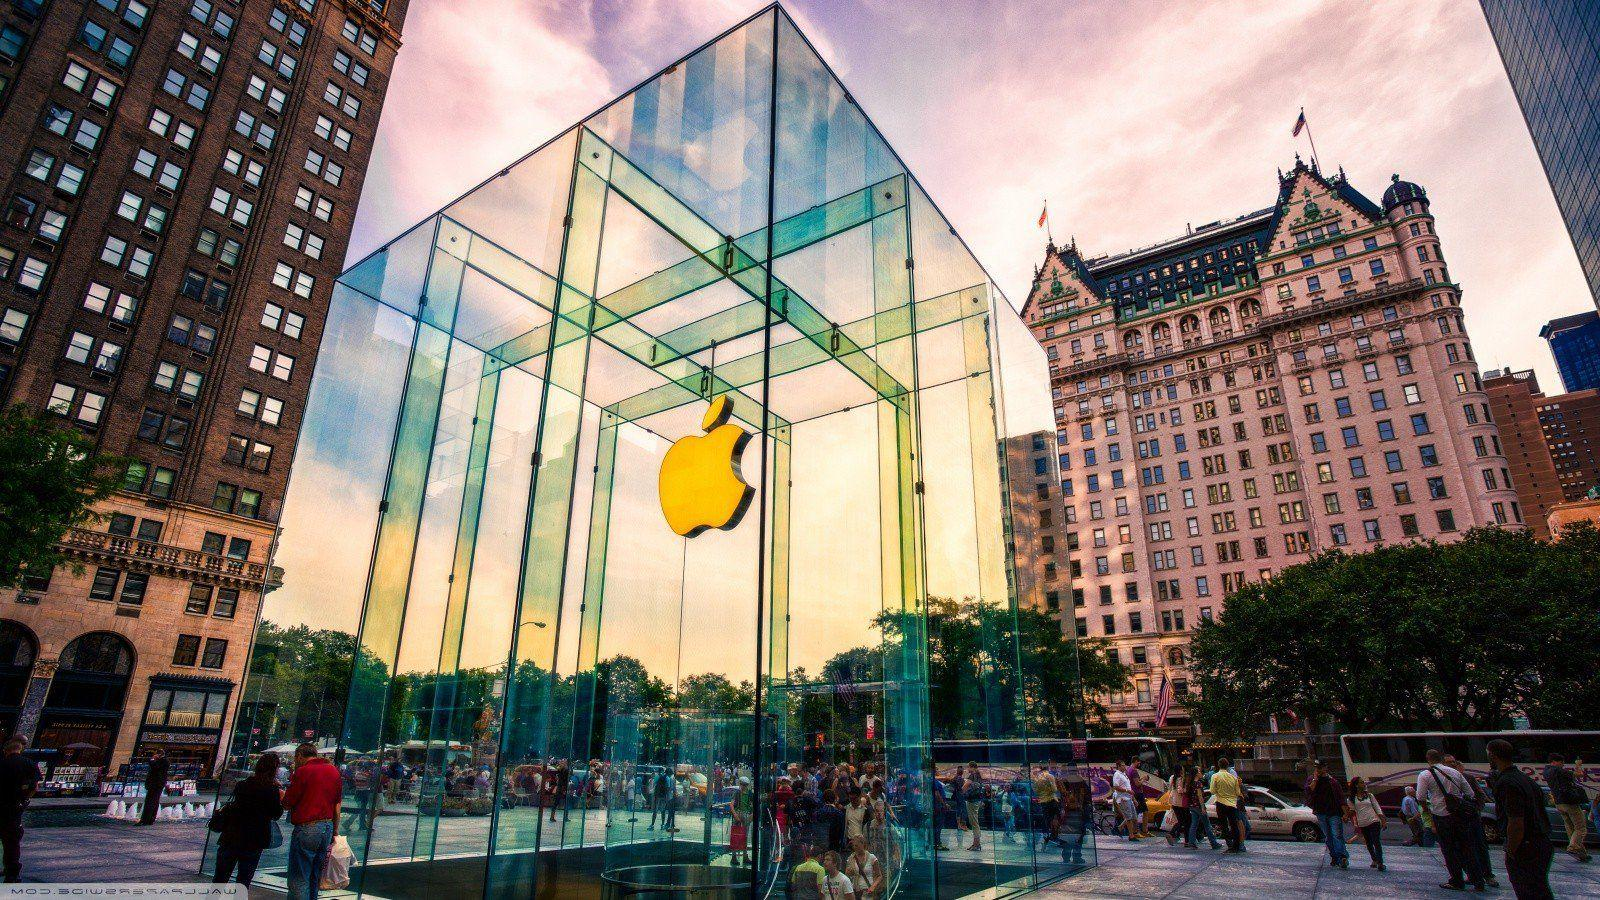 Apple Store | Computer HD 4k Wallpapers